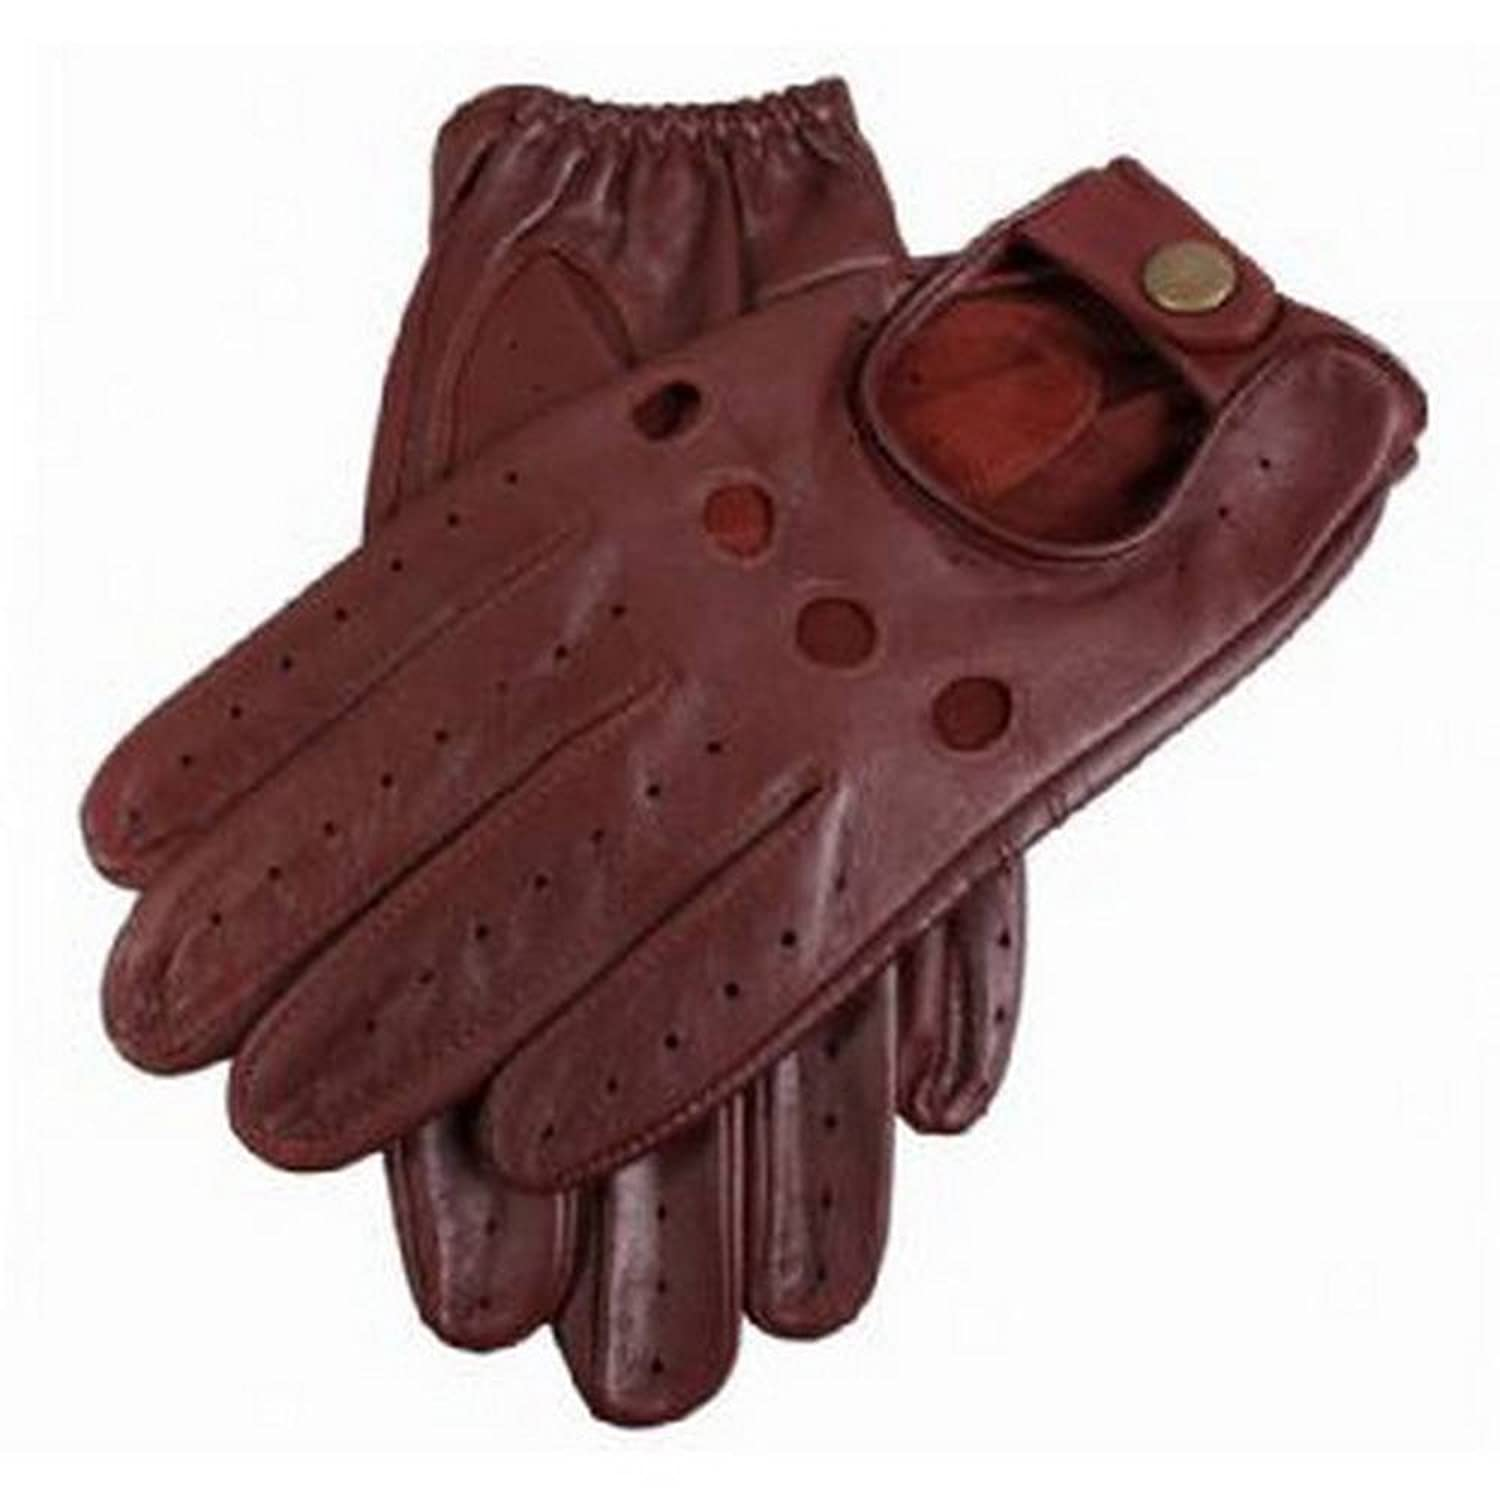 Mens leather gloves dents - English Tan Delta Leather Driving Gloves By Dents 7 8 Dents At Amazon Men S Clothing Store Powersports Gloves